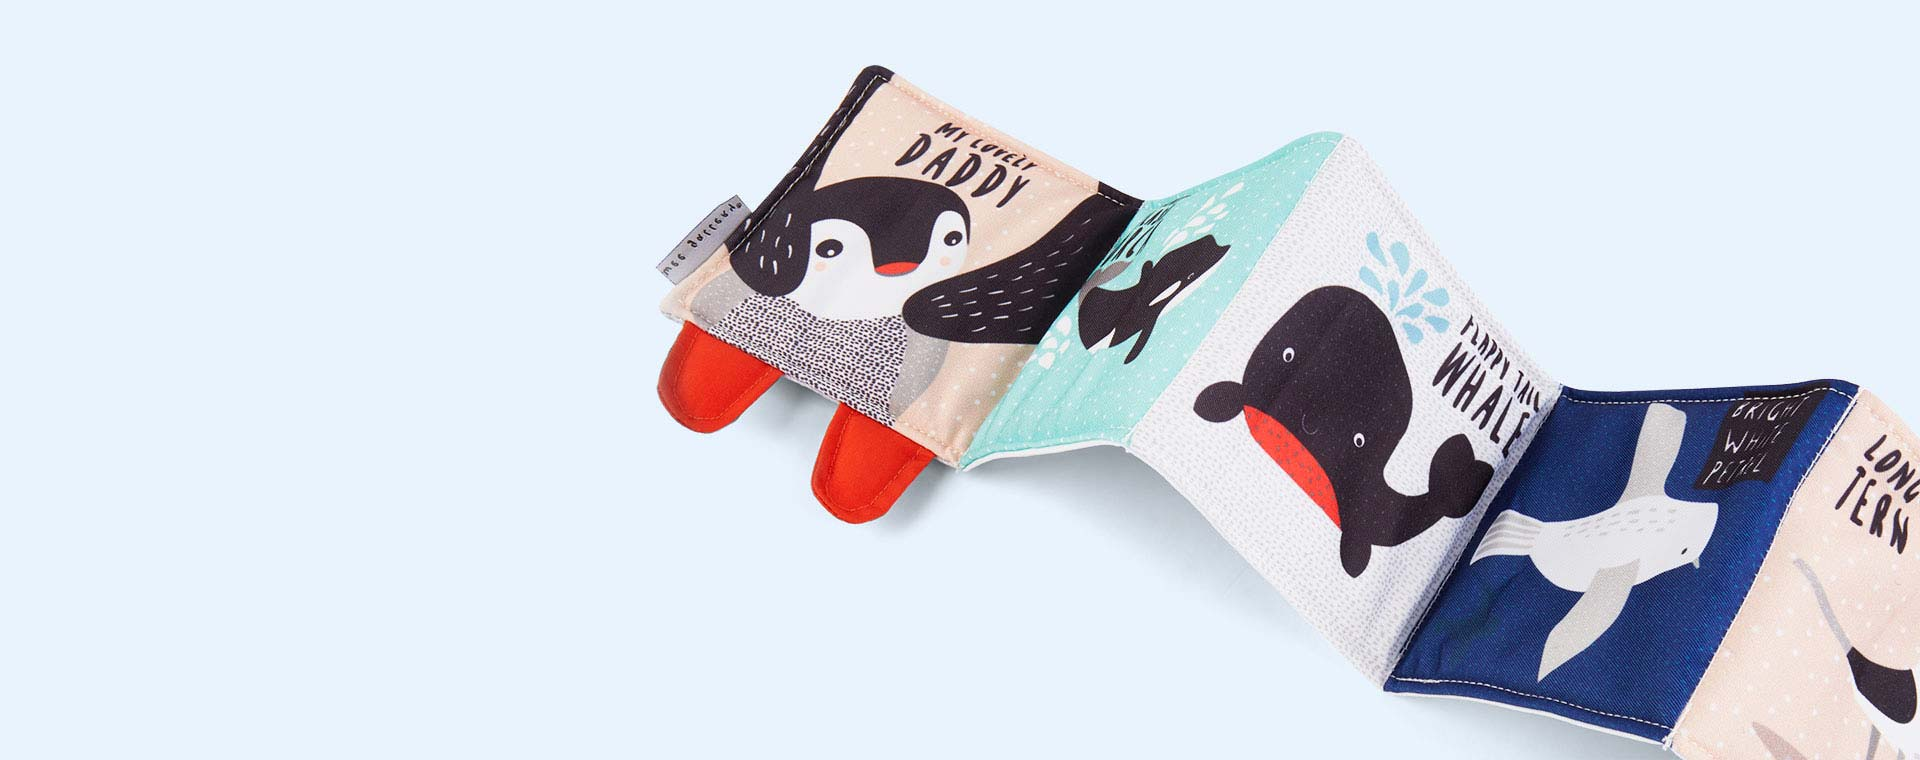 Penguin Wee Gallery Animal Soft Cloth Book